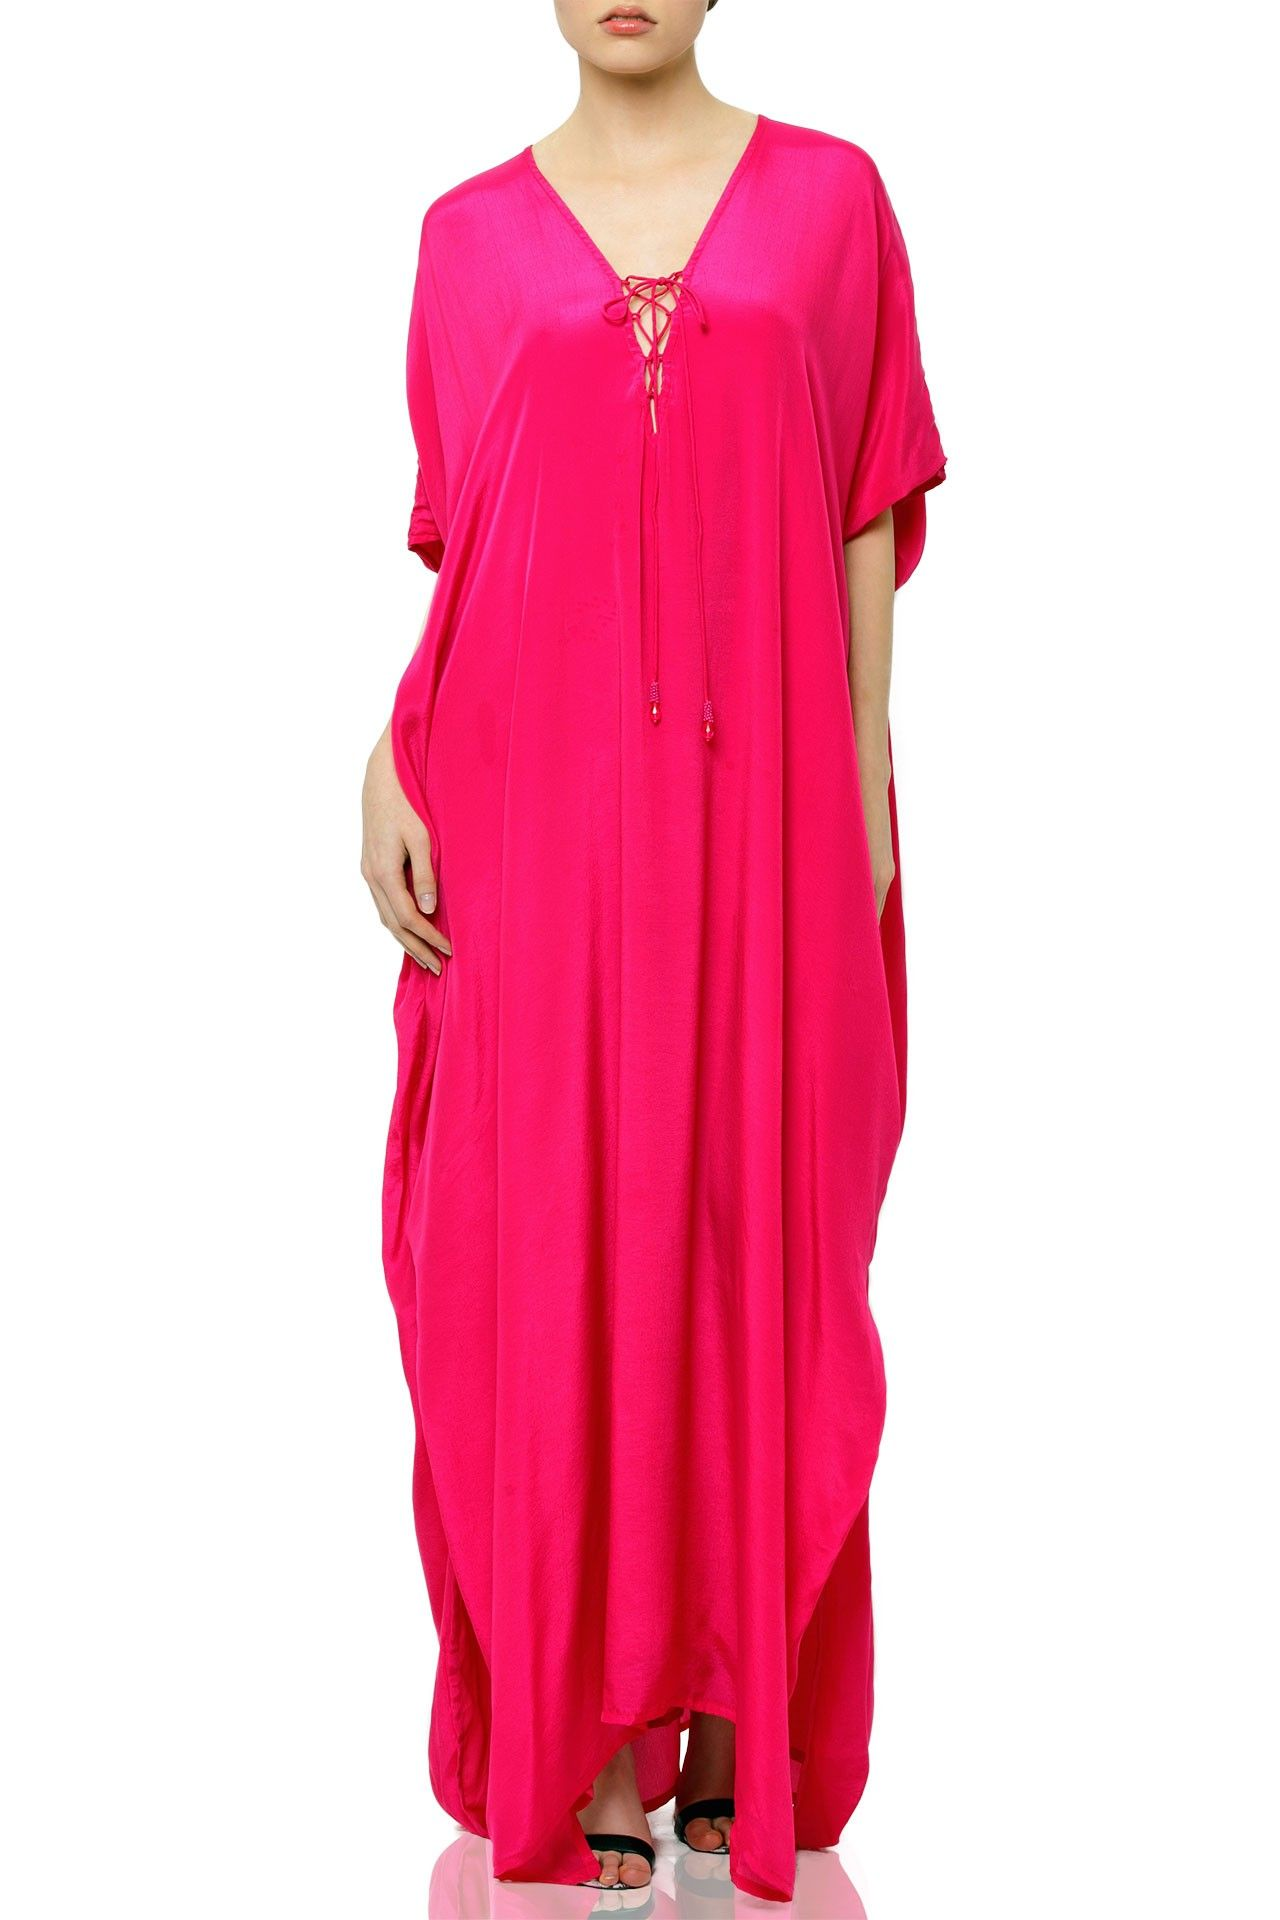 4aa0e2c43d3a Beach Perfect Kaftan Dress for Resort Wedding Guest Dresses - Shahida  Parides